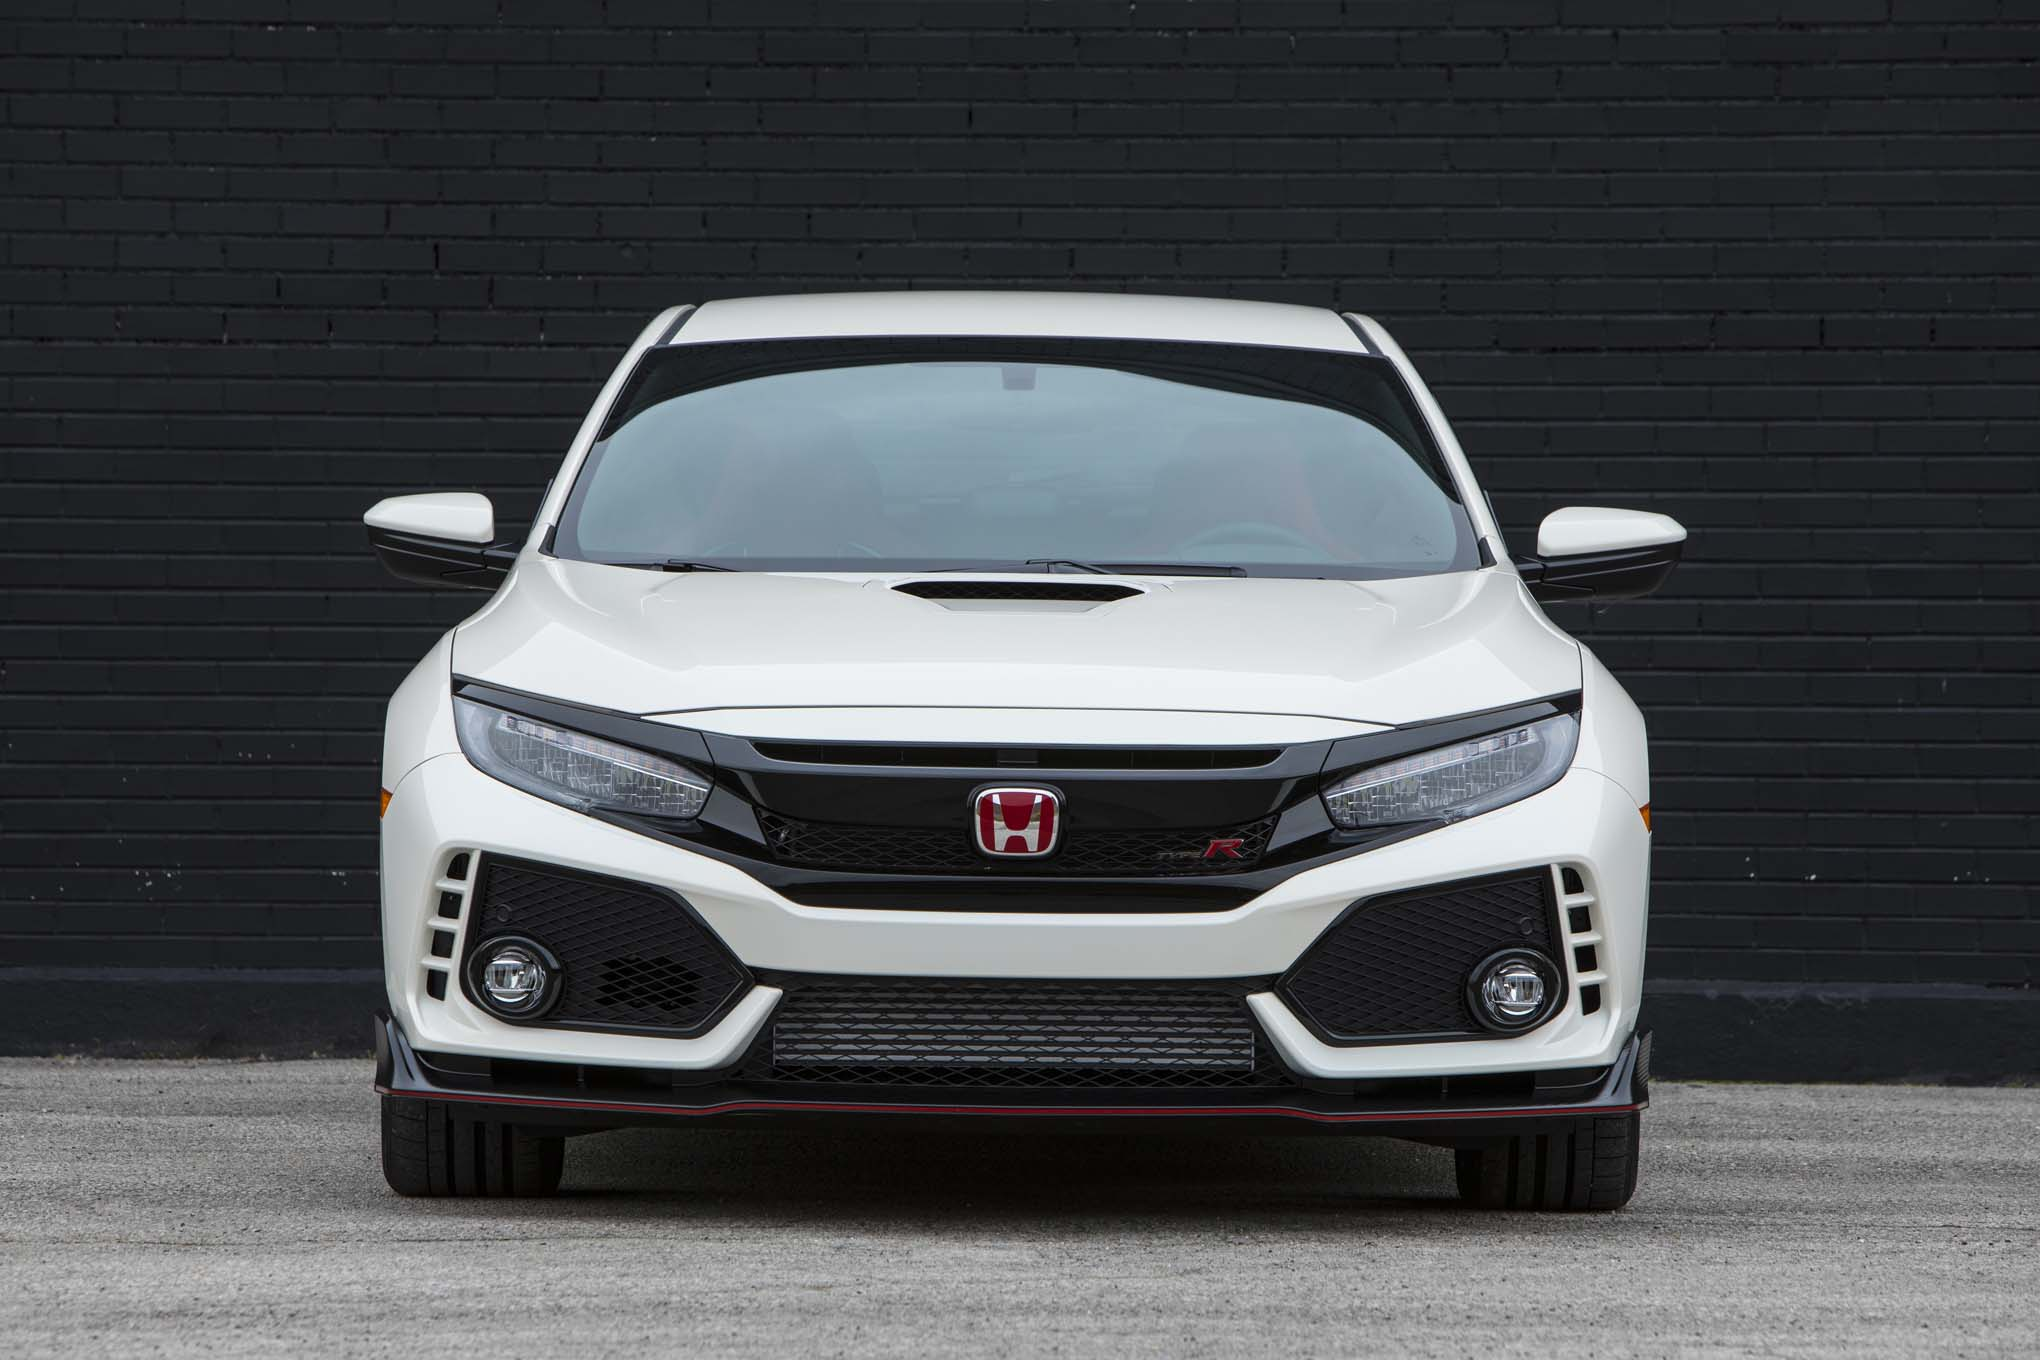 2017 honda civic type r first drive automobile magazine for Honda accord type r 2017